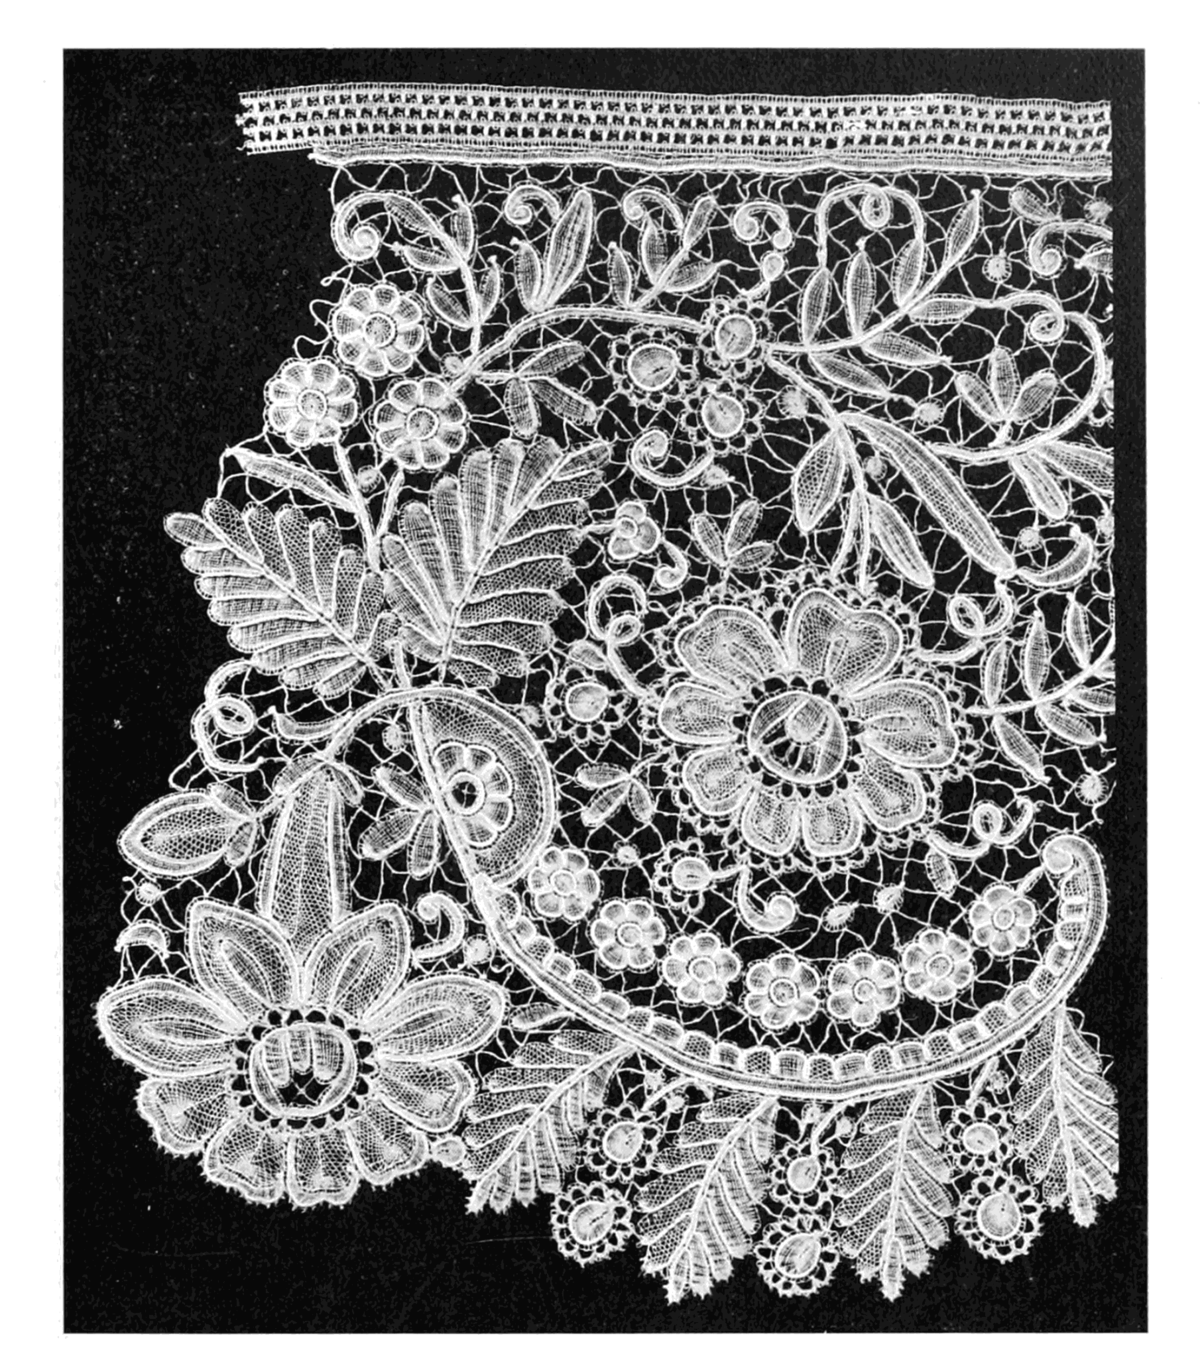 Brussels lace - Wikipedia